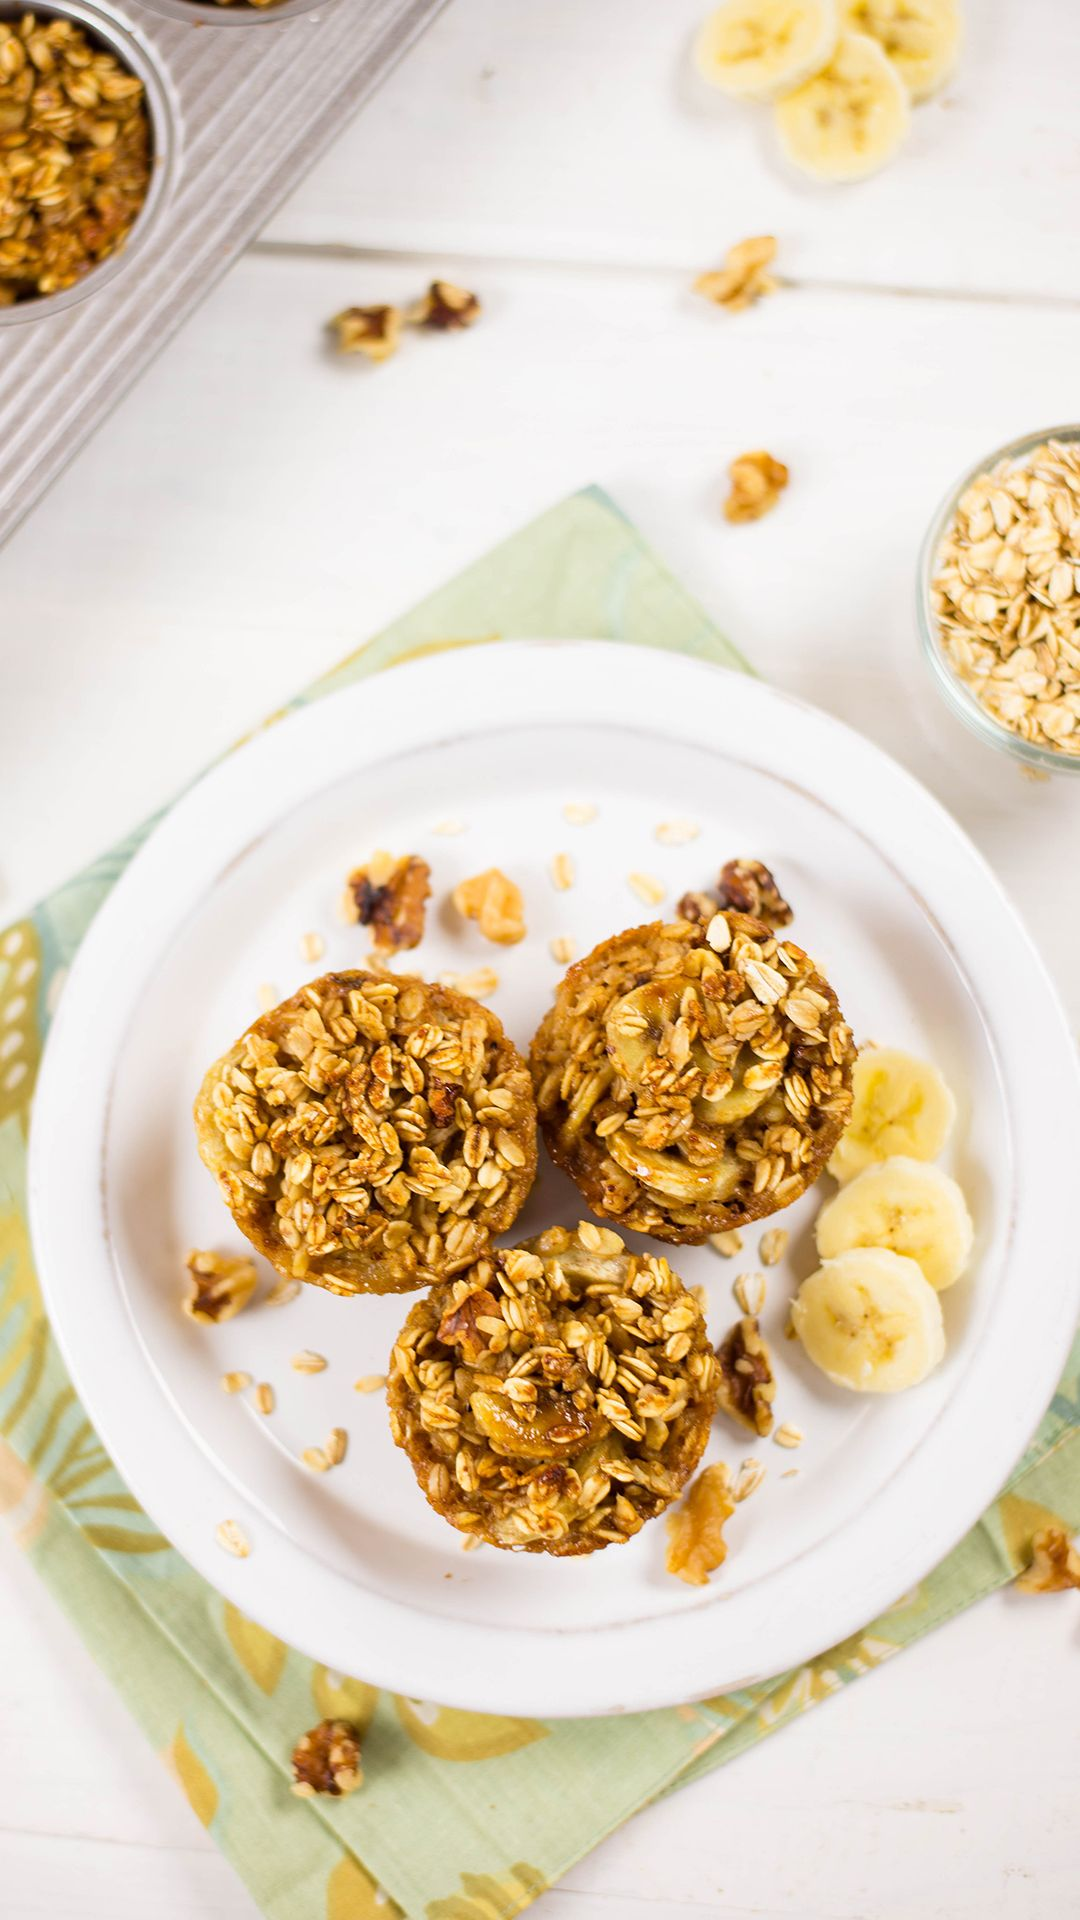 Banana Walnut Baked Oatmeal Cups